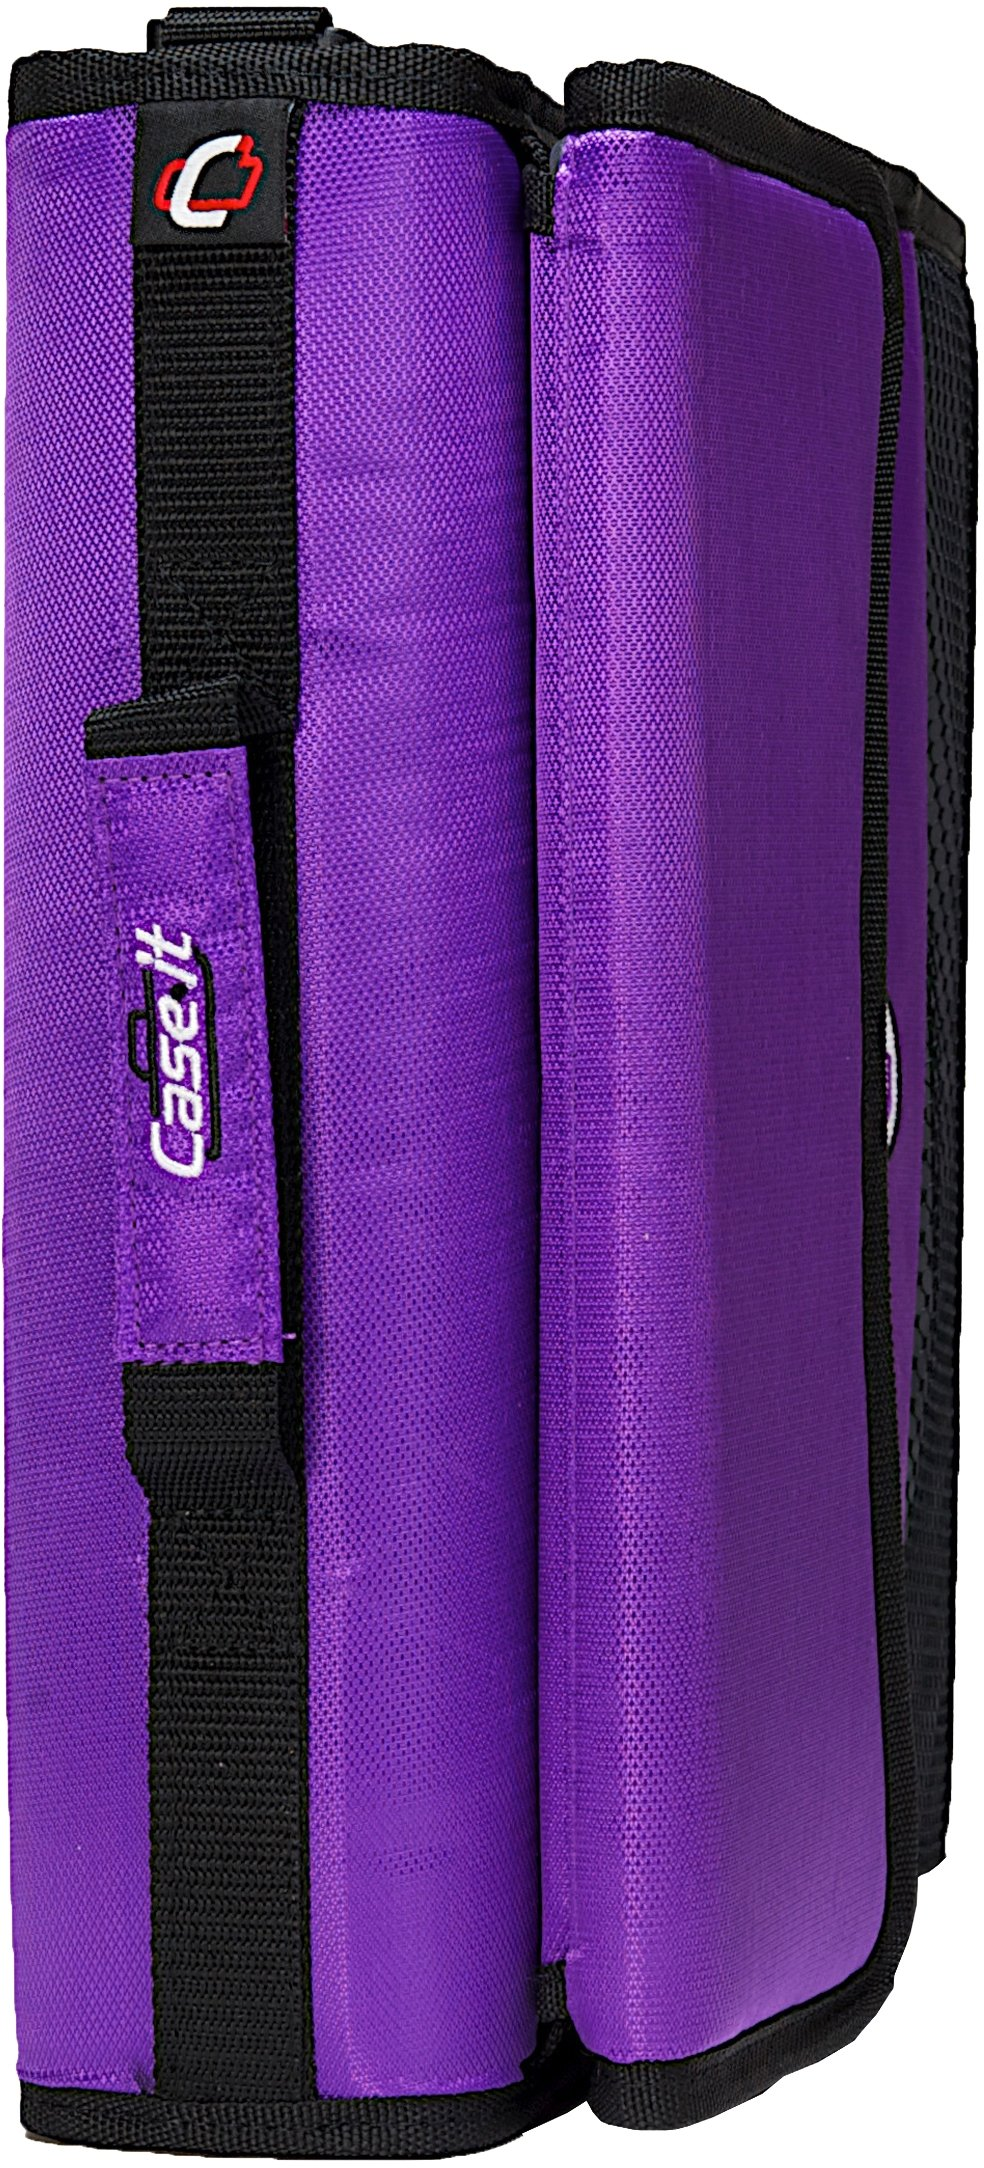 Case-it Sidekick 2-Inch O-Ring Zipper Binder with Removable Tab File, Purple, D-901-PUR by Case-It (Image #7)